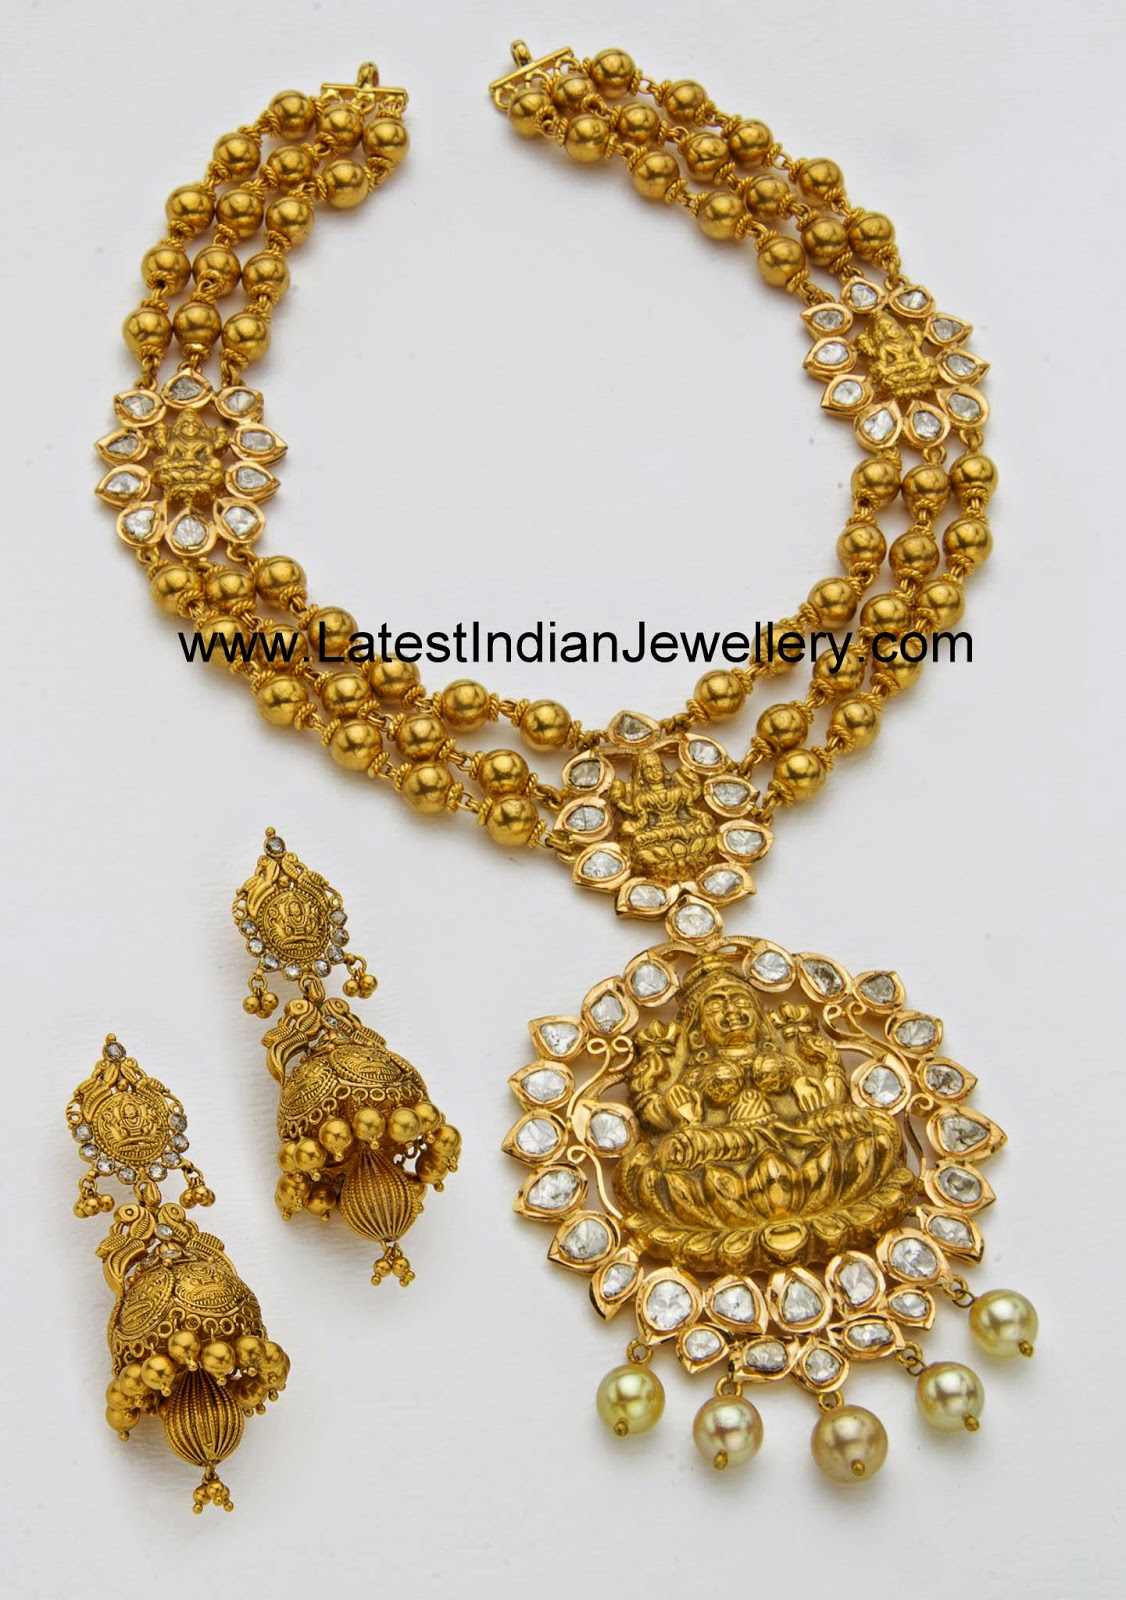 Lakshmi design gold temple jewellery haram